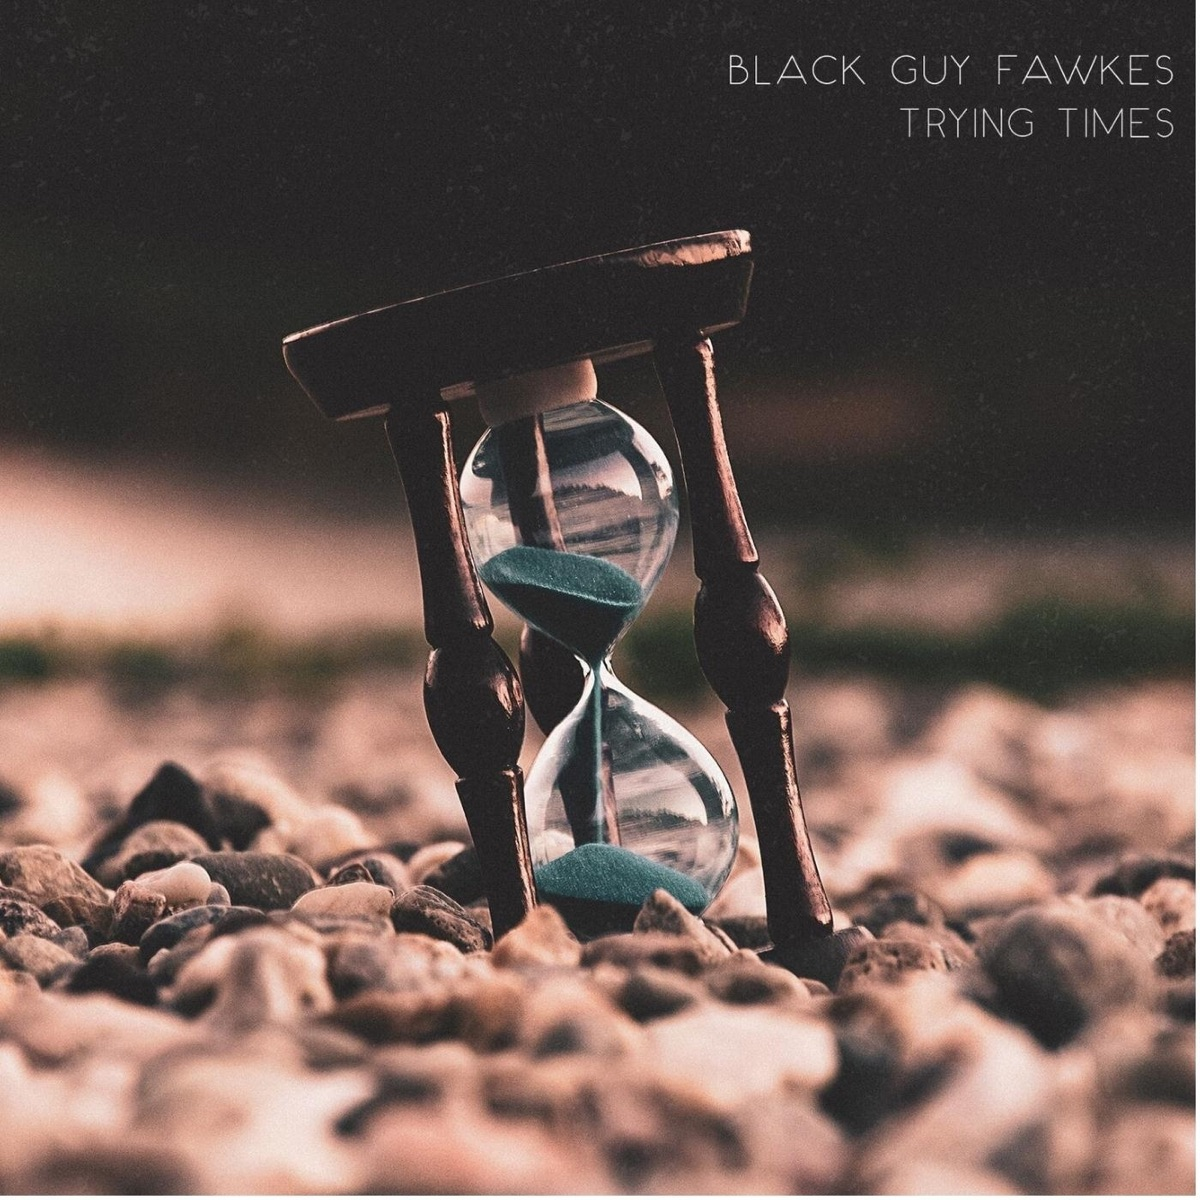 Trying Times Black Guy Fawkes CD cover